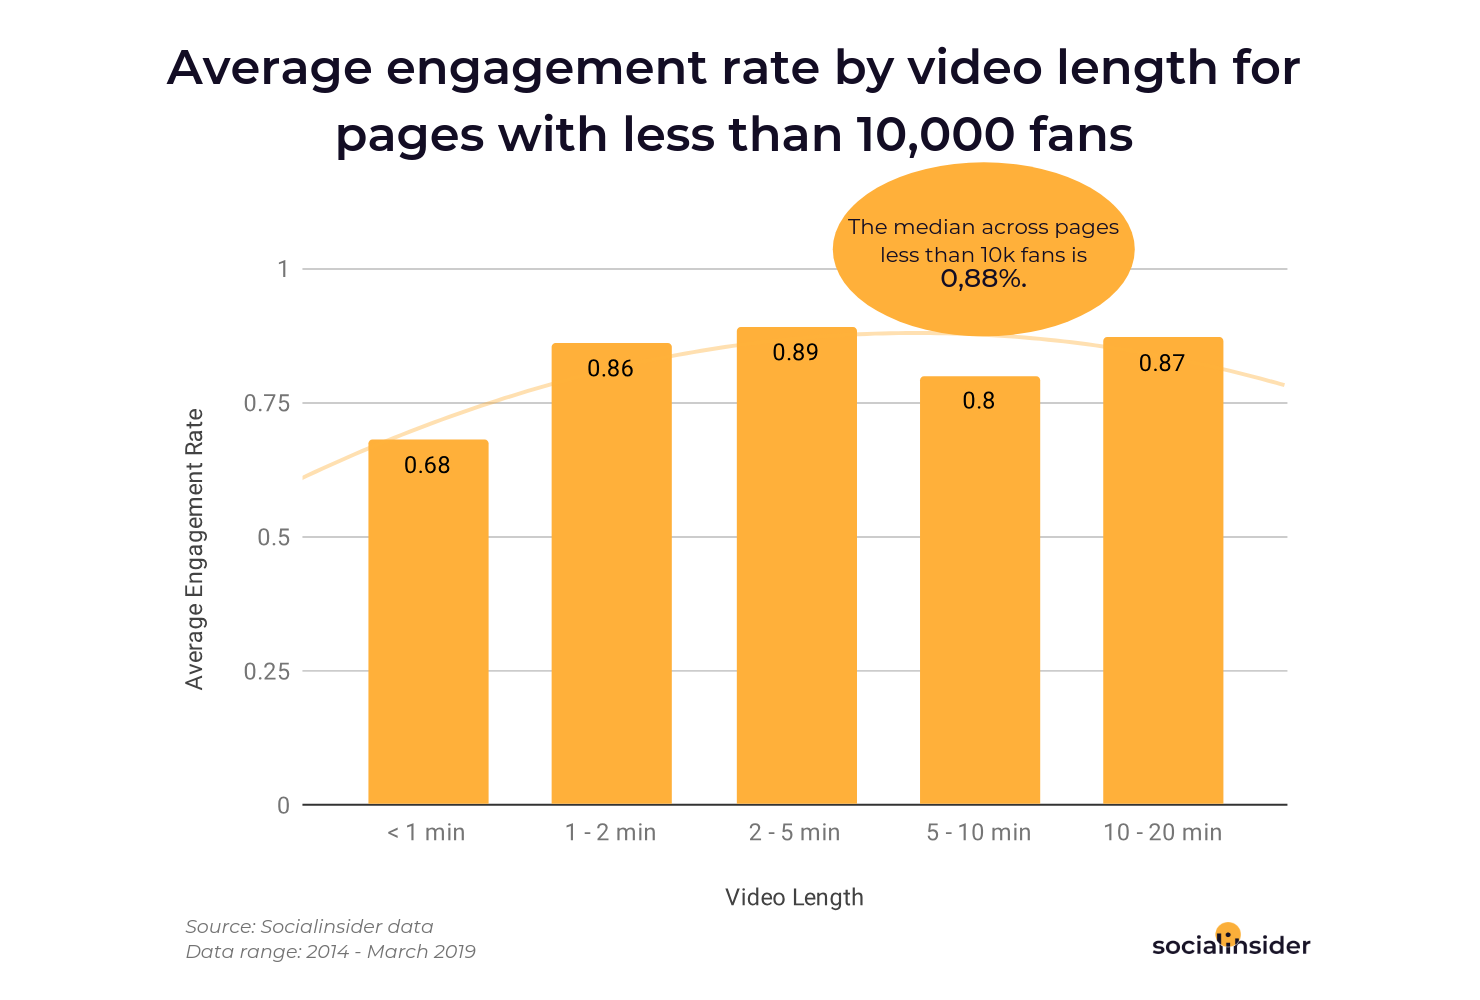 Average engagement rate by video length for pages with less than 10,000 fans